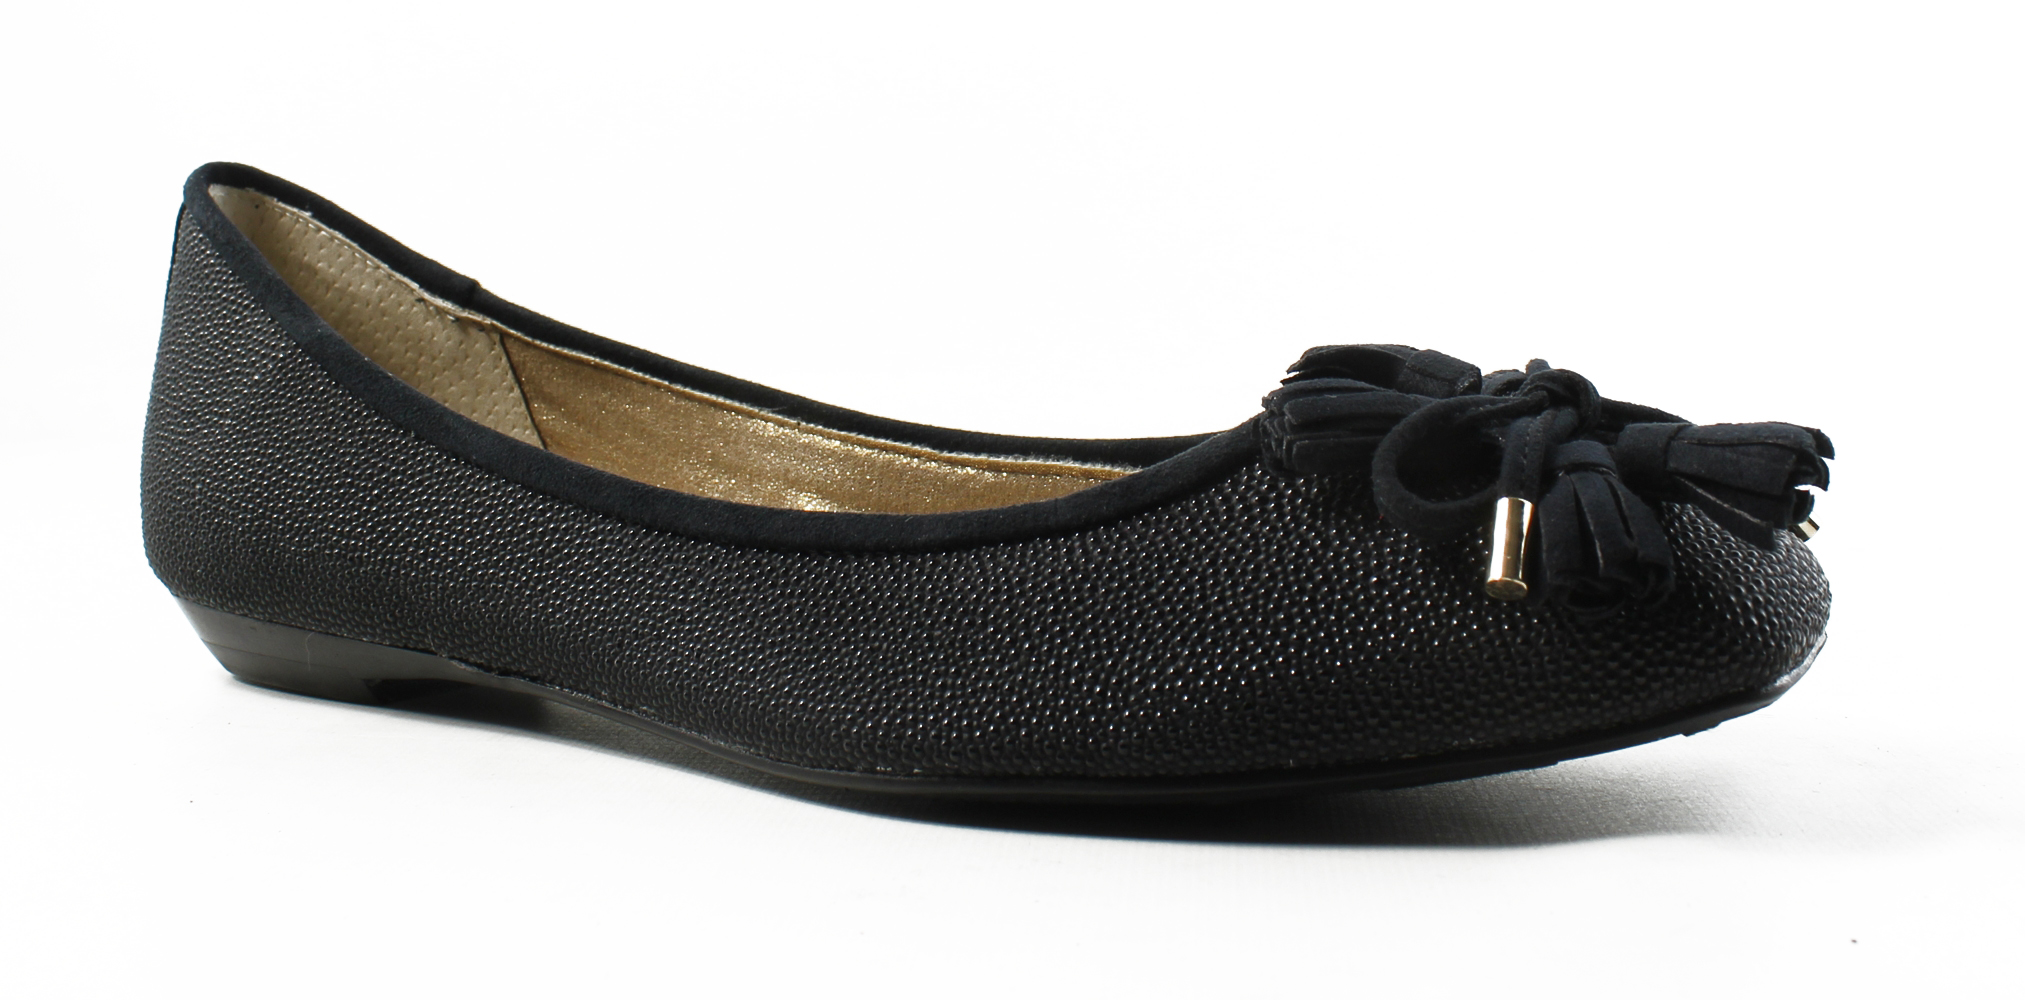 J. Renee Womens Black Ballet Flats Size 7.5 New by J. Renee